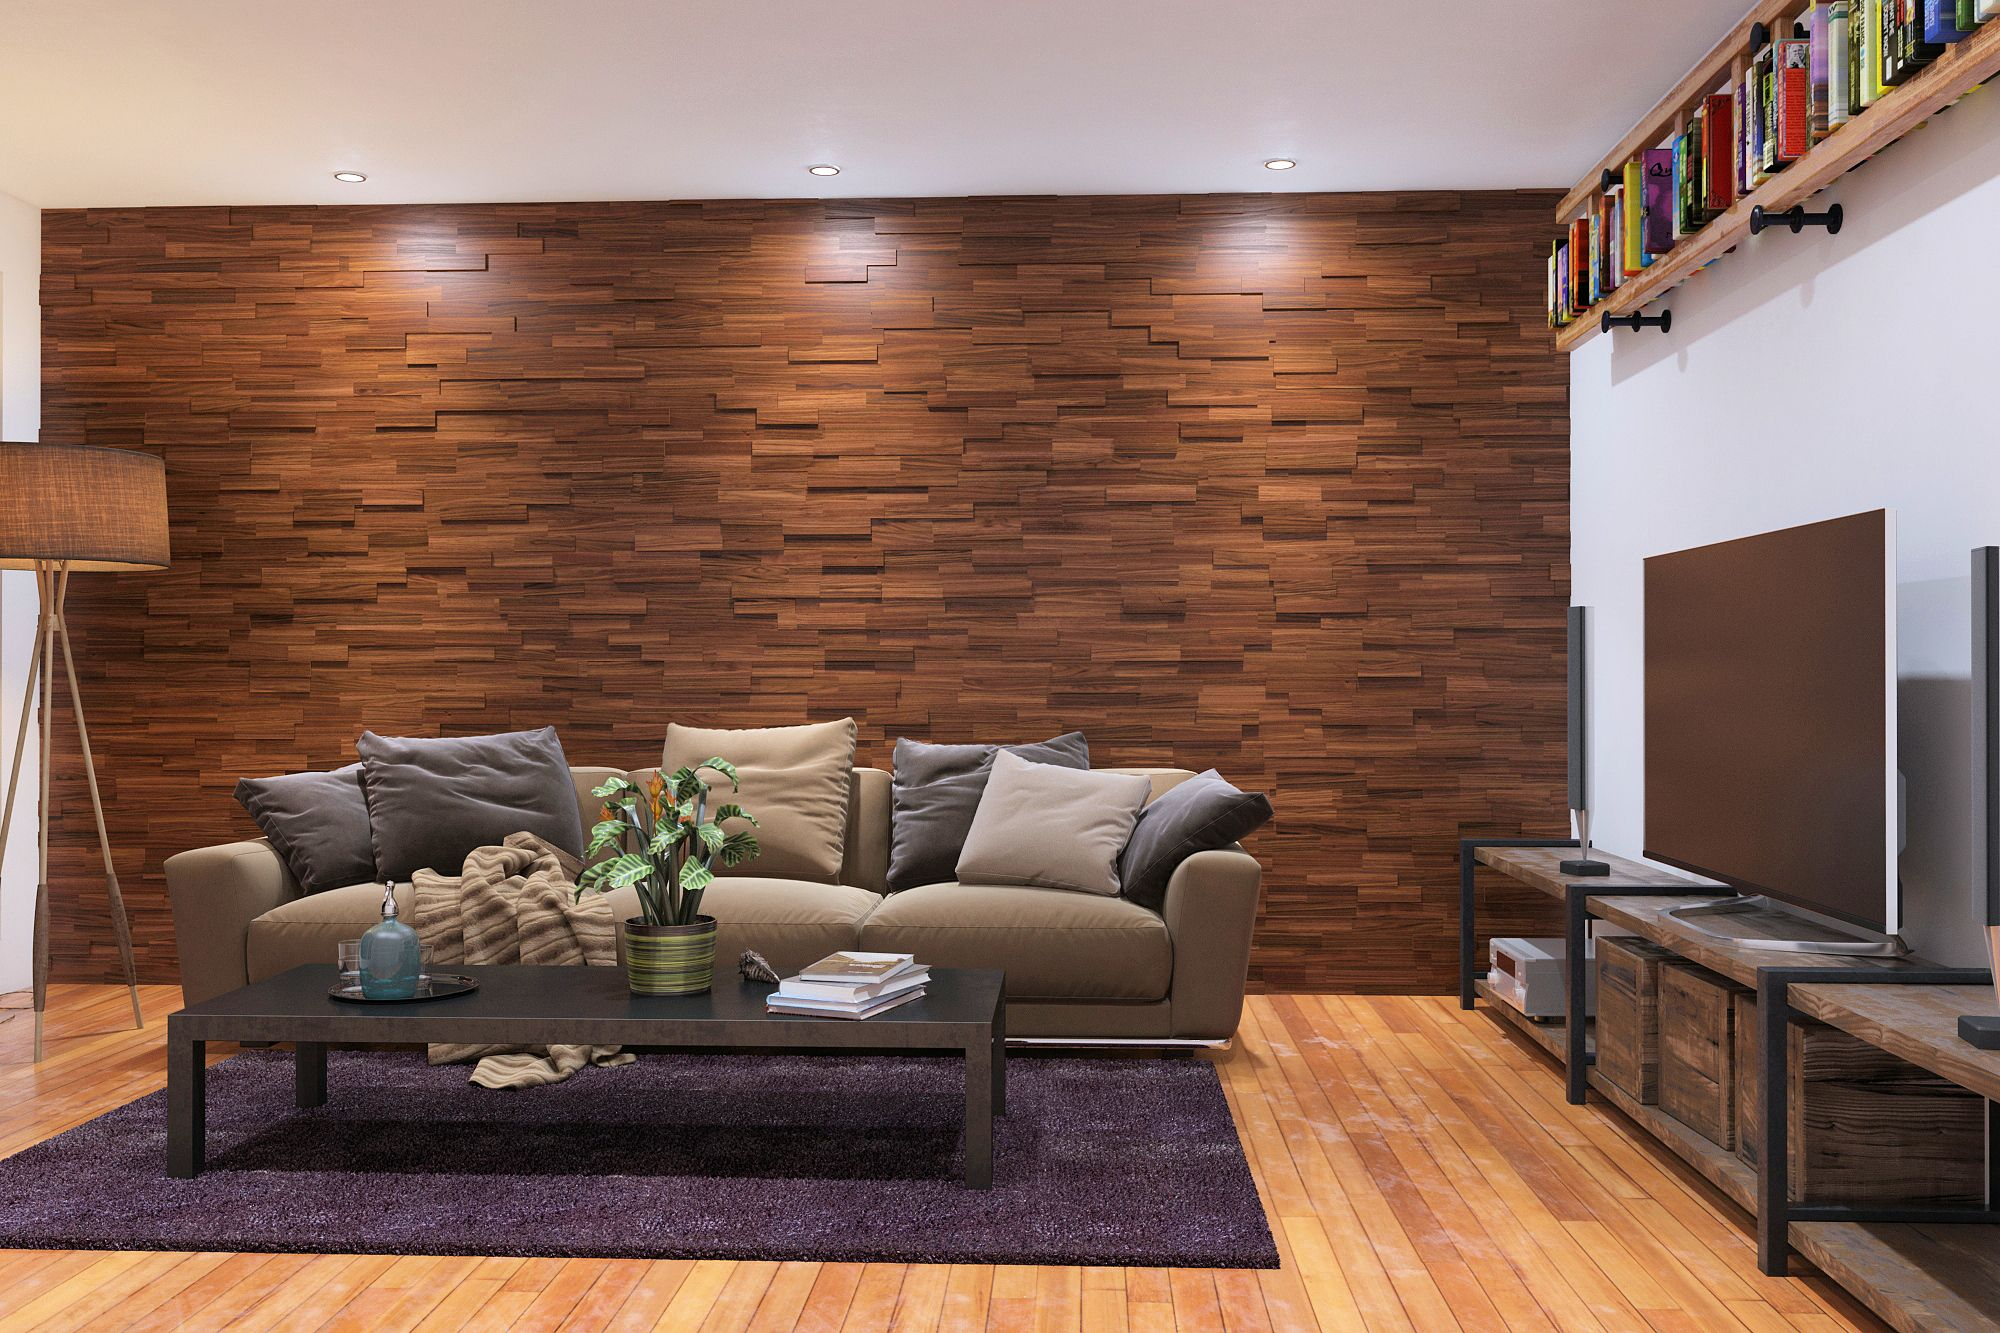 Types Of Wood Paneling For Walls